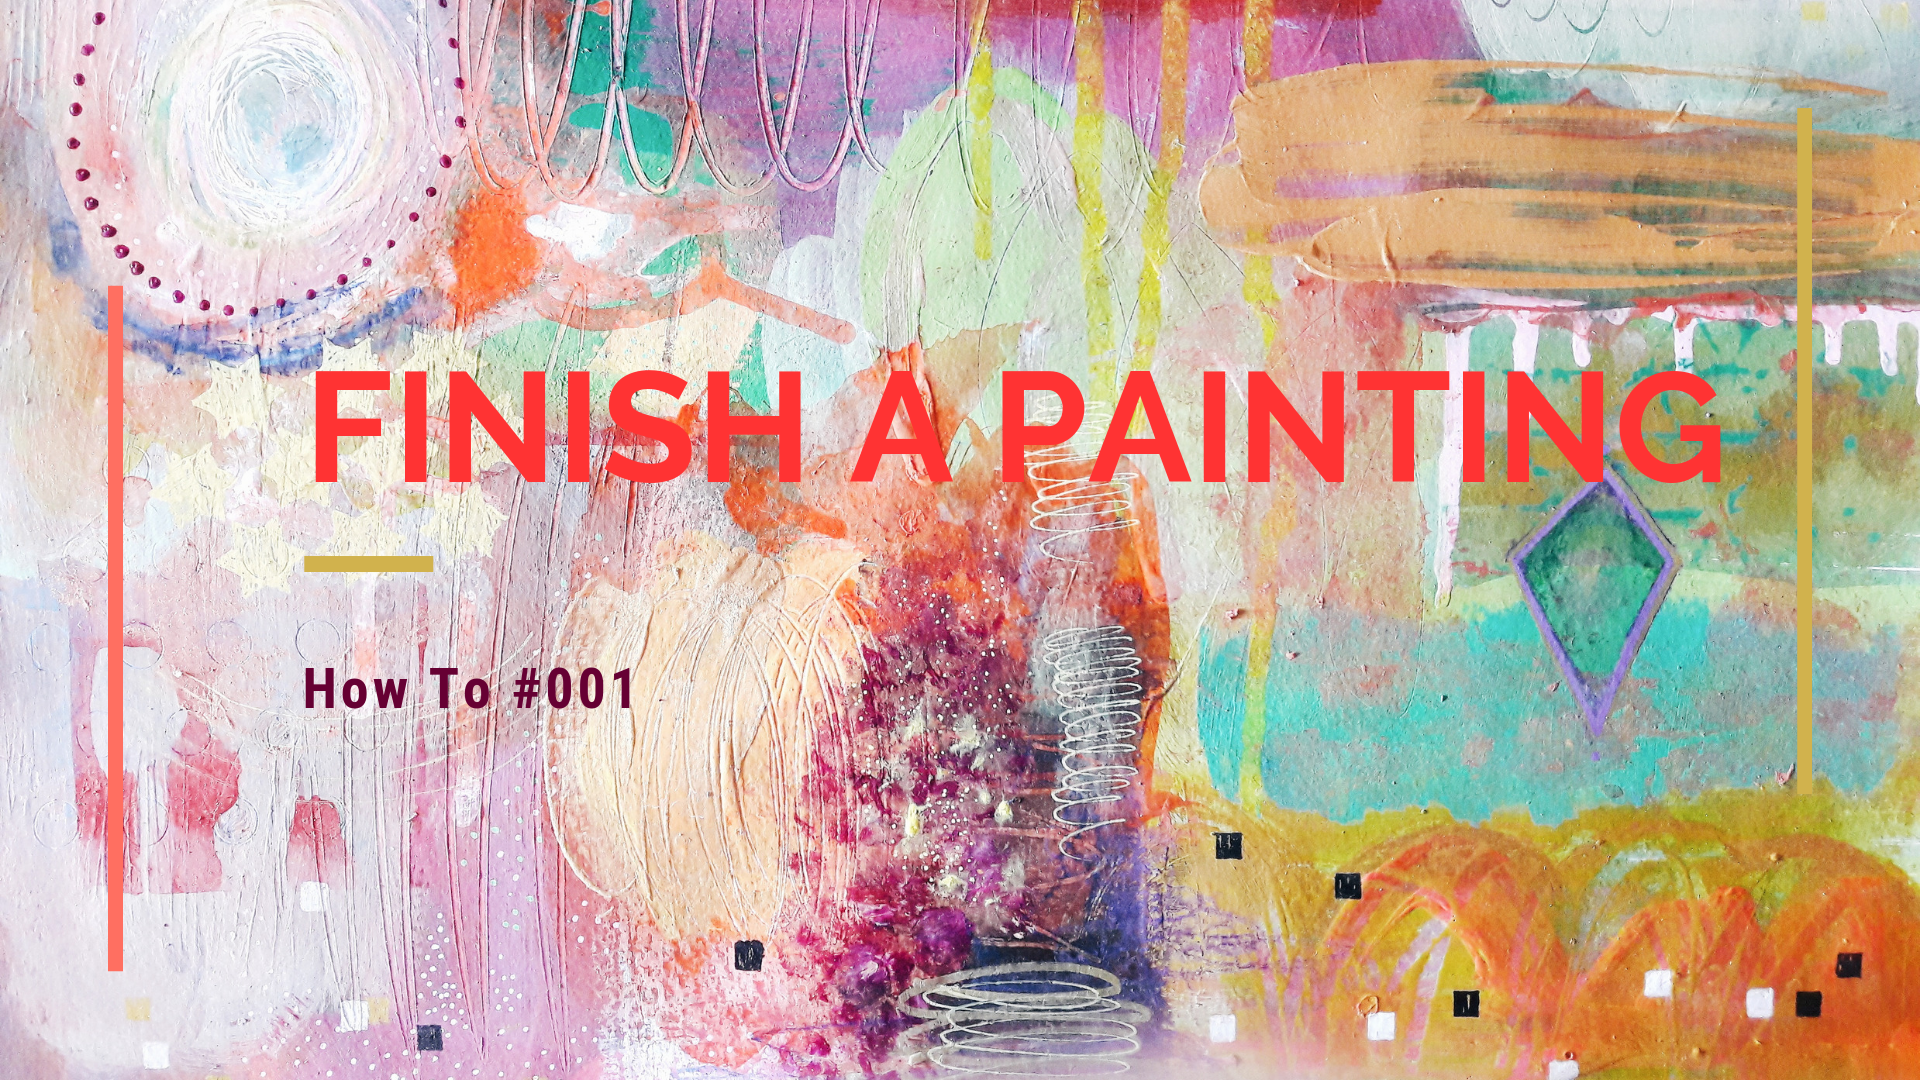 Verena Fay Blog - How To #001 - Finish a Painting.png